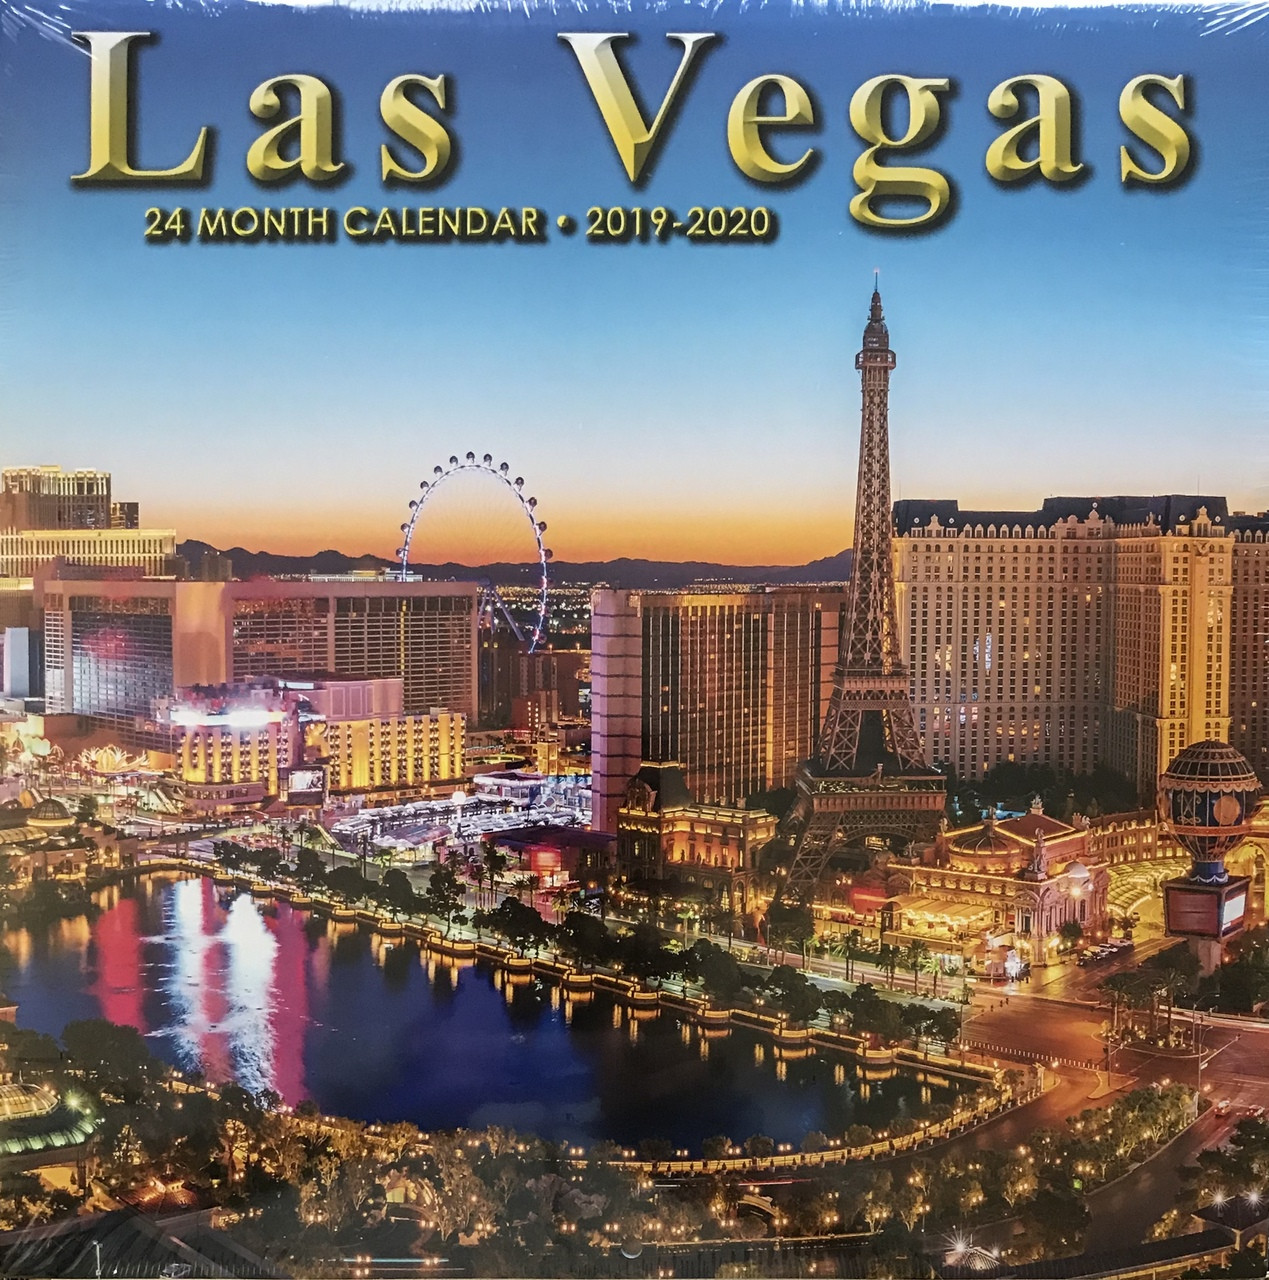 Wall Calendar 2020 2019 2020 24 Month 2 Year Las Vegas Wall Calendar   Direct Order